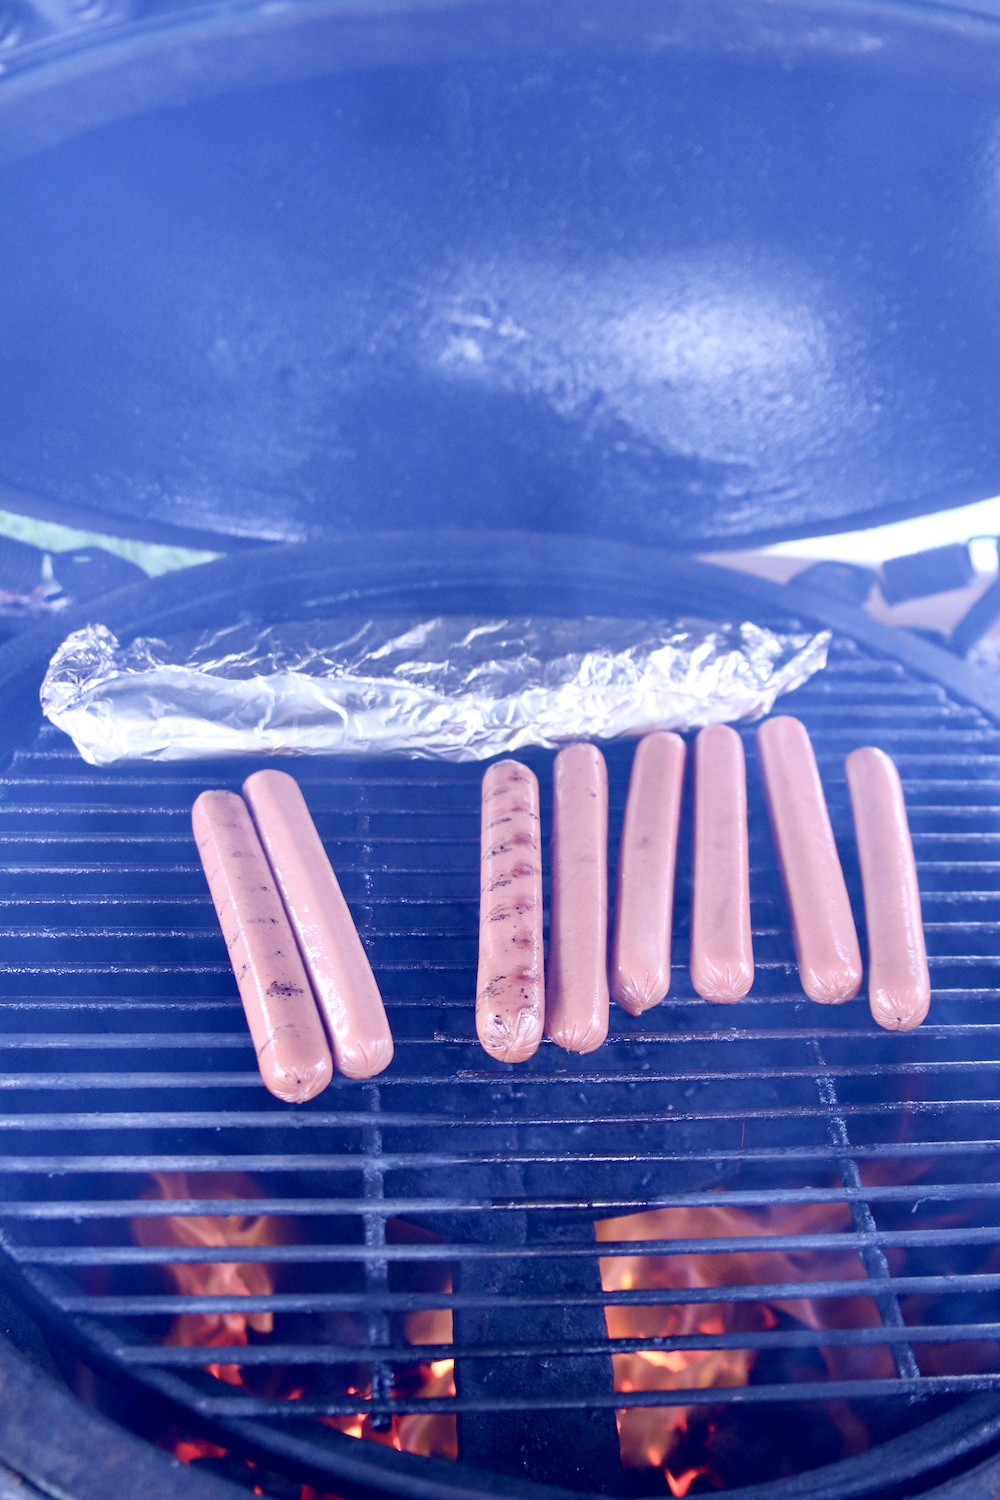 hot dogs on a grill